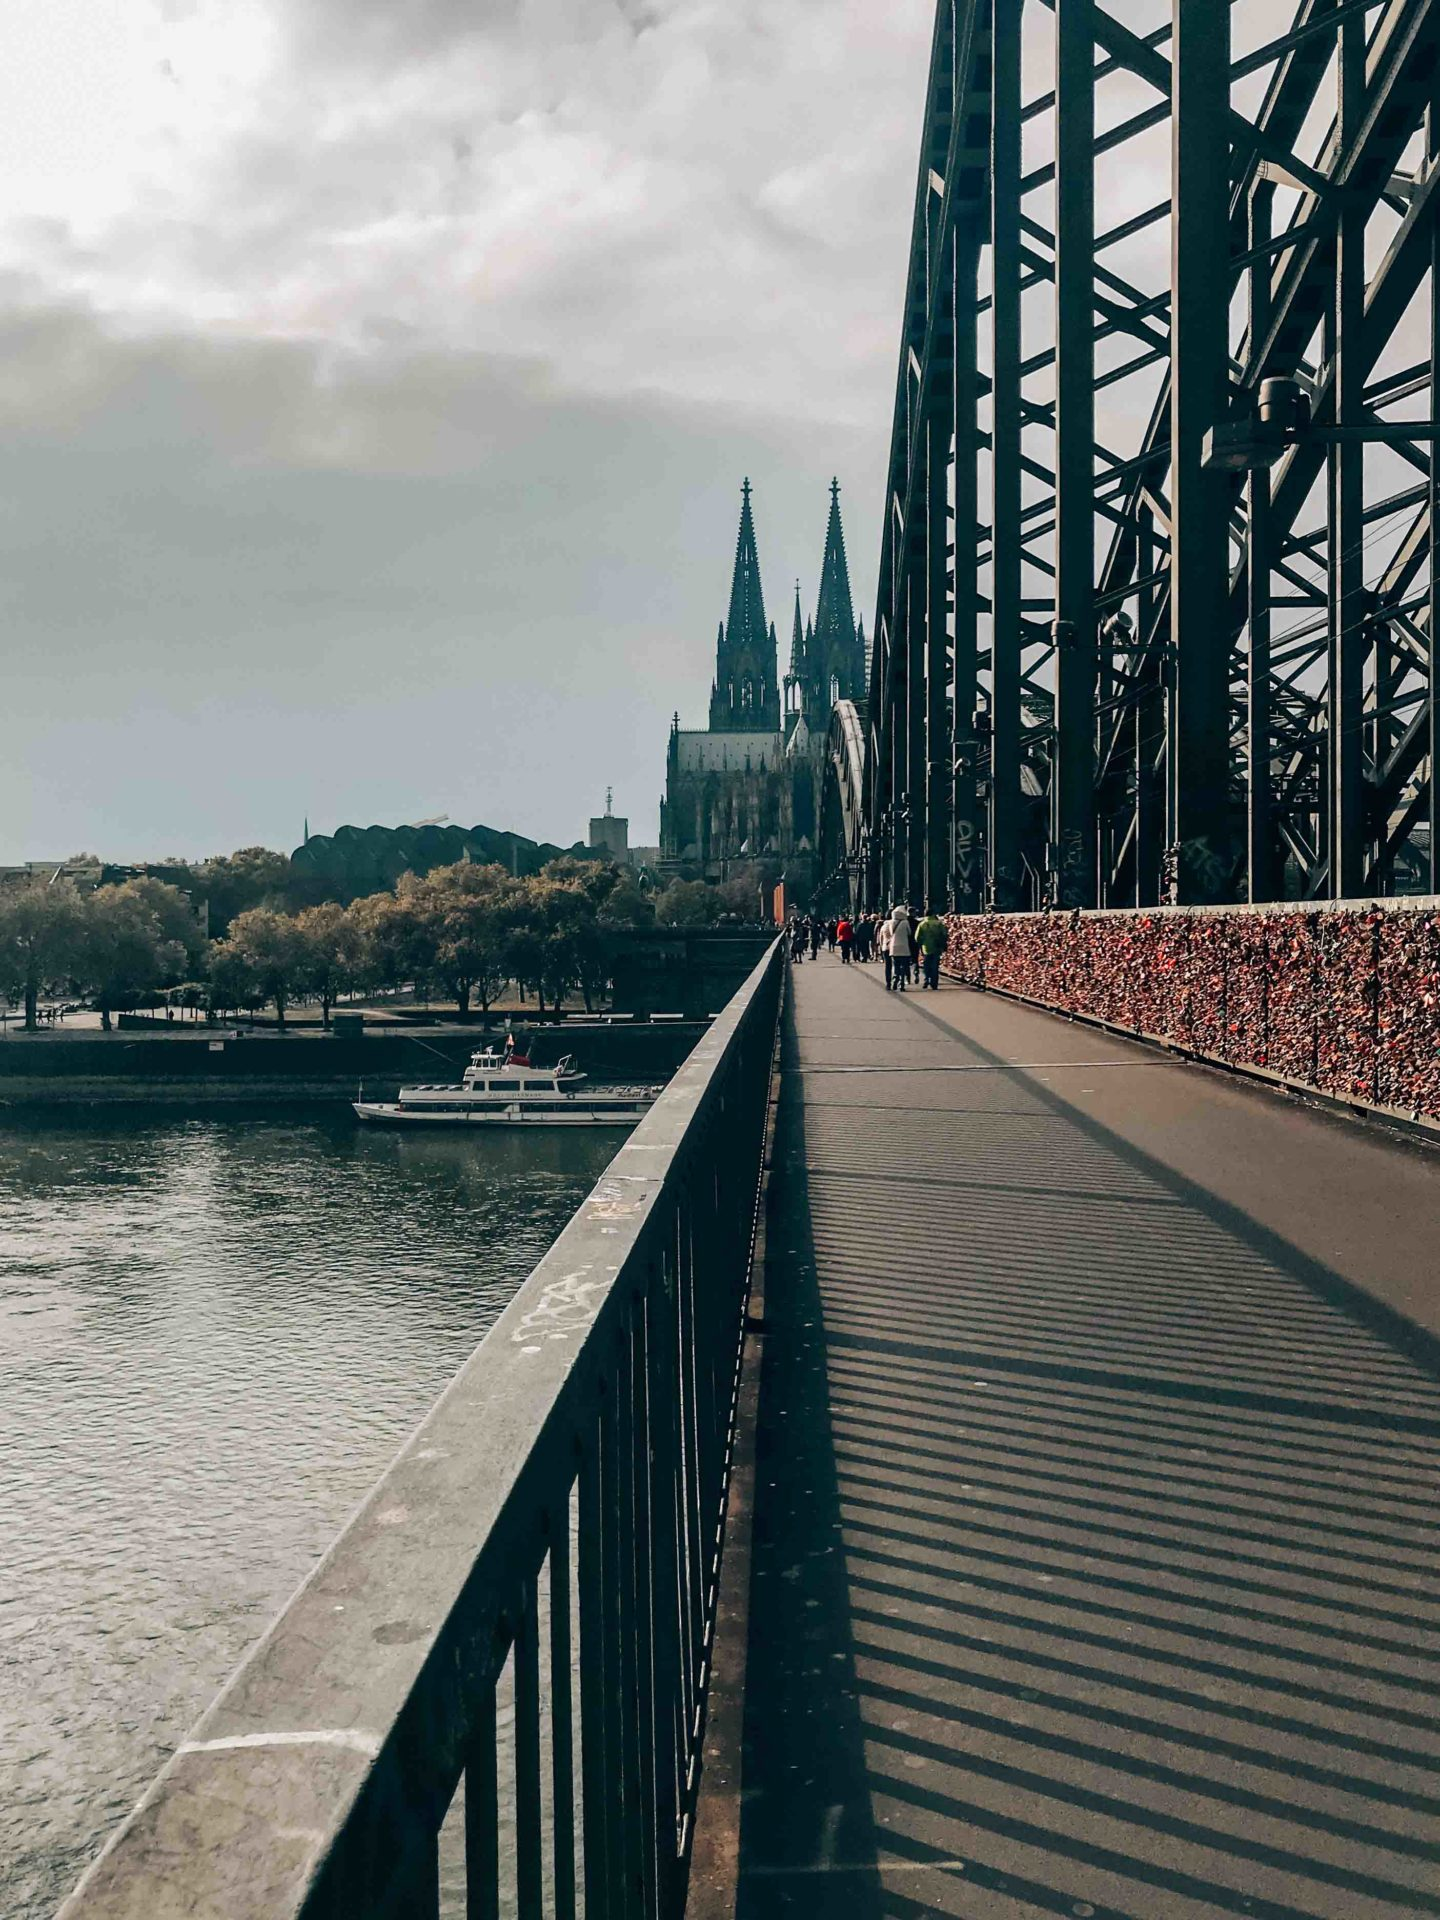 The Hohenzollernbrucke, the love locks bridge